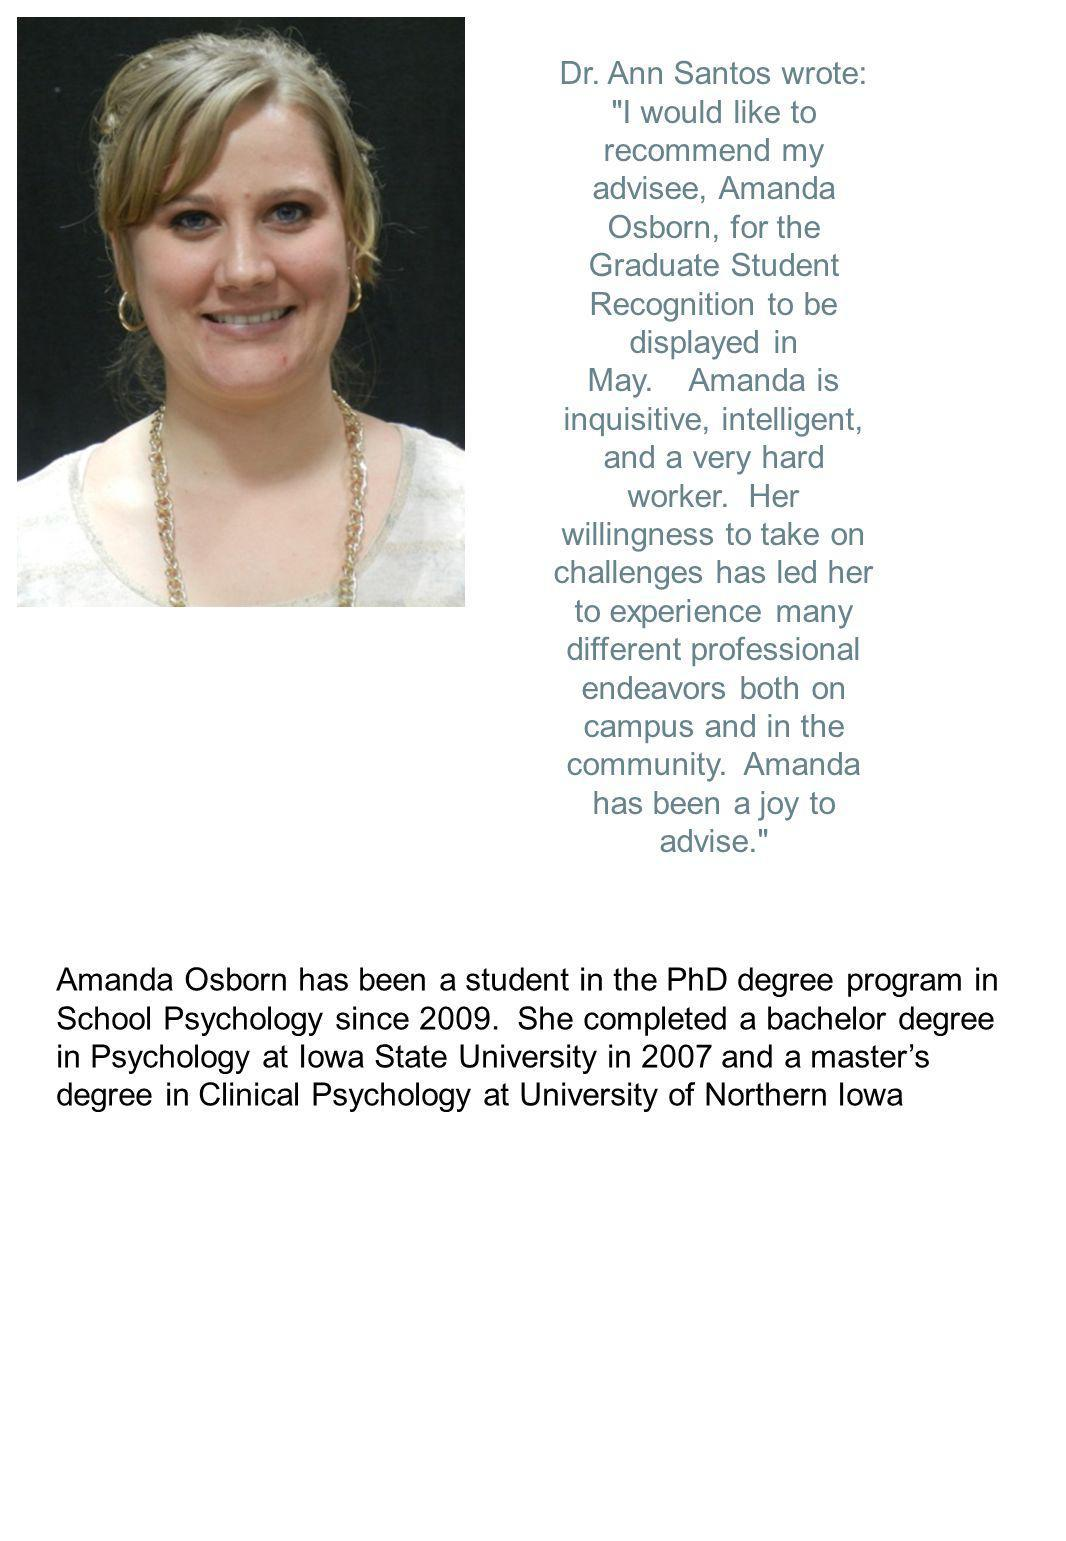 Dr. Ann Santos wrote: I would like to recommend my advisee, Amanda Osborn, for the Graduate Student Recognition to be displayed in May. Amanda is inquisitive, intelligent, and a very hard worker. Her willingness to take on challenges has led her to experience many different professional endeavors both on campus and in the community. Amanda has been a joy to advise.